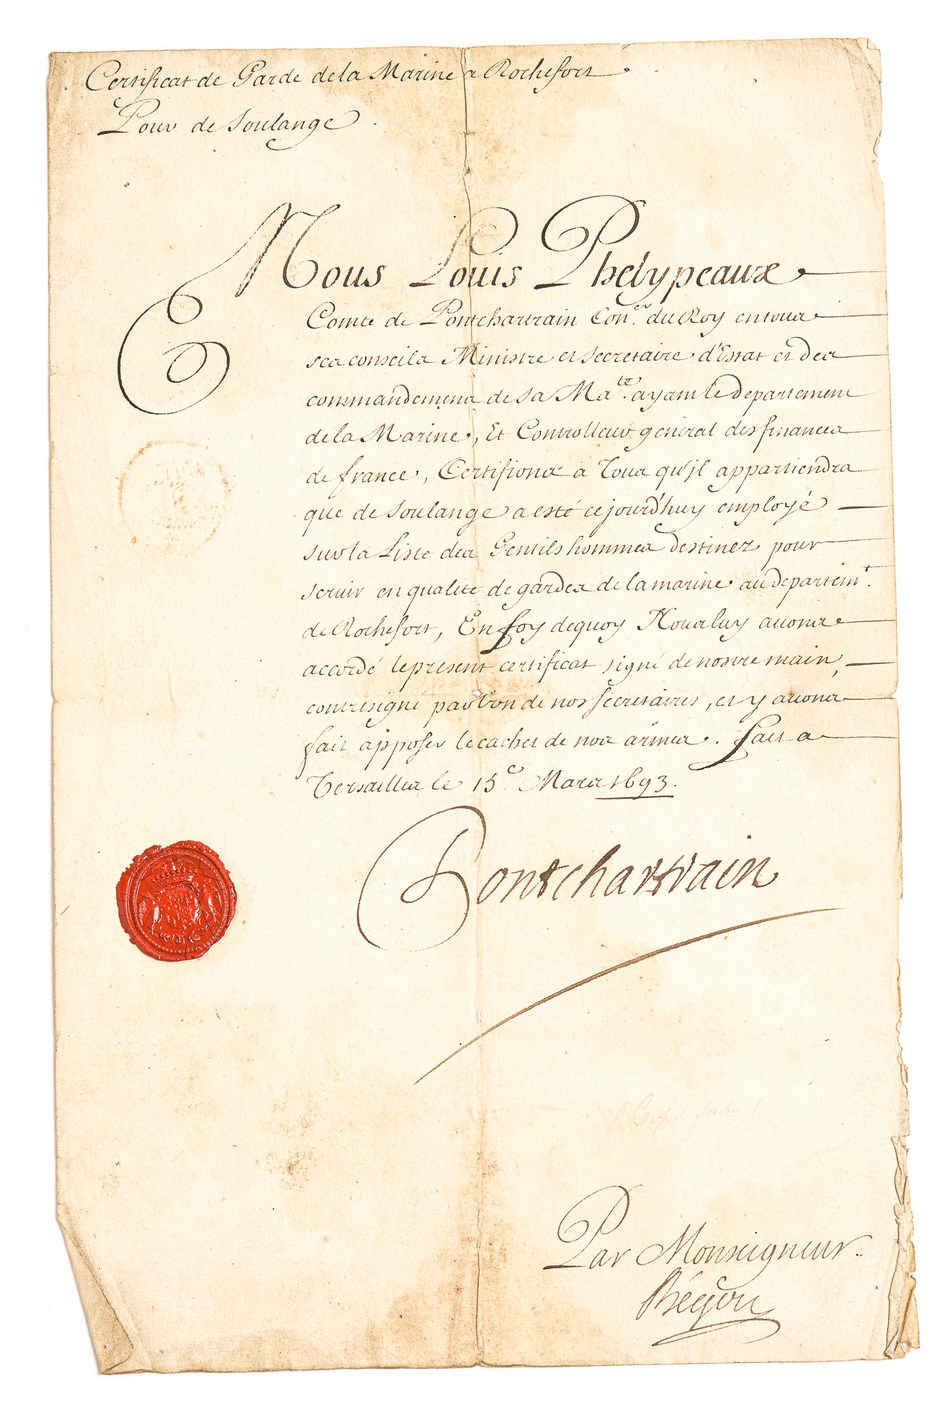 Letters from Louis XIV & Louis XV - Newly Discovered Important Canadian Historical Documents to be sold at A.H. Wilkens Auctions & Appraisals in Toronto (CNW Group/A.H. Wilkens)